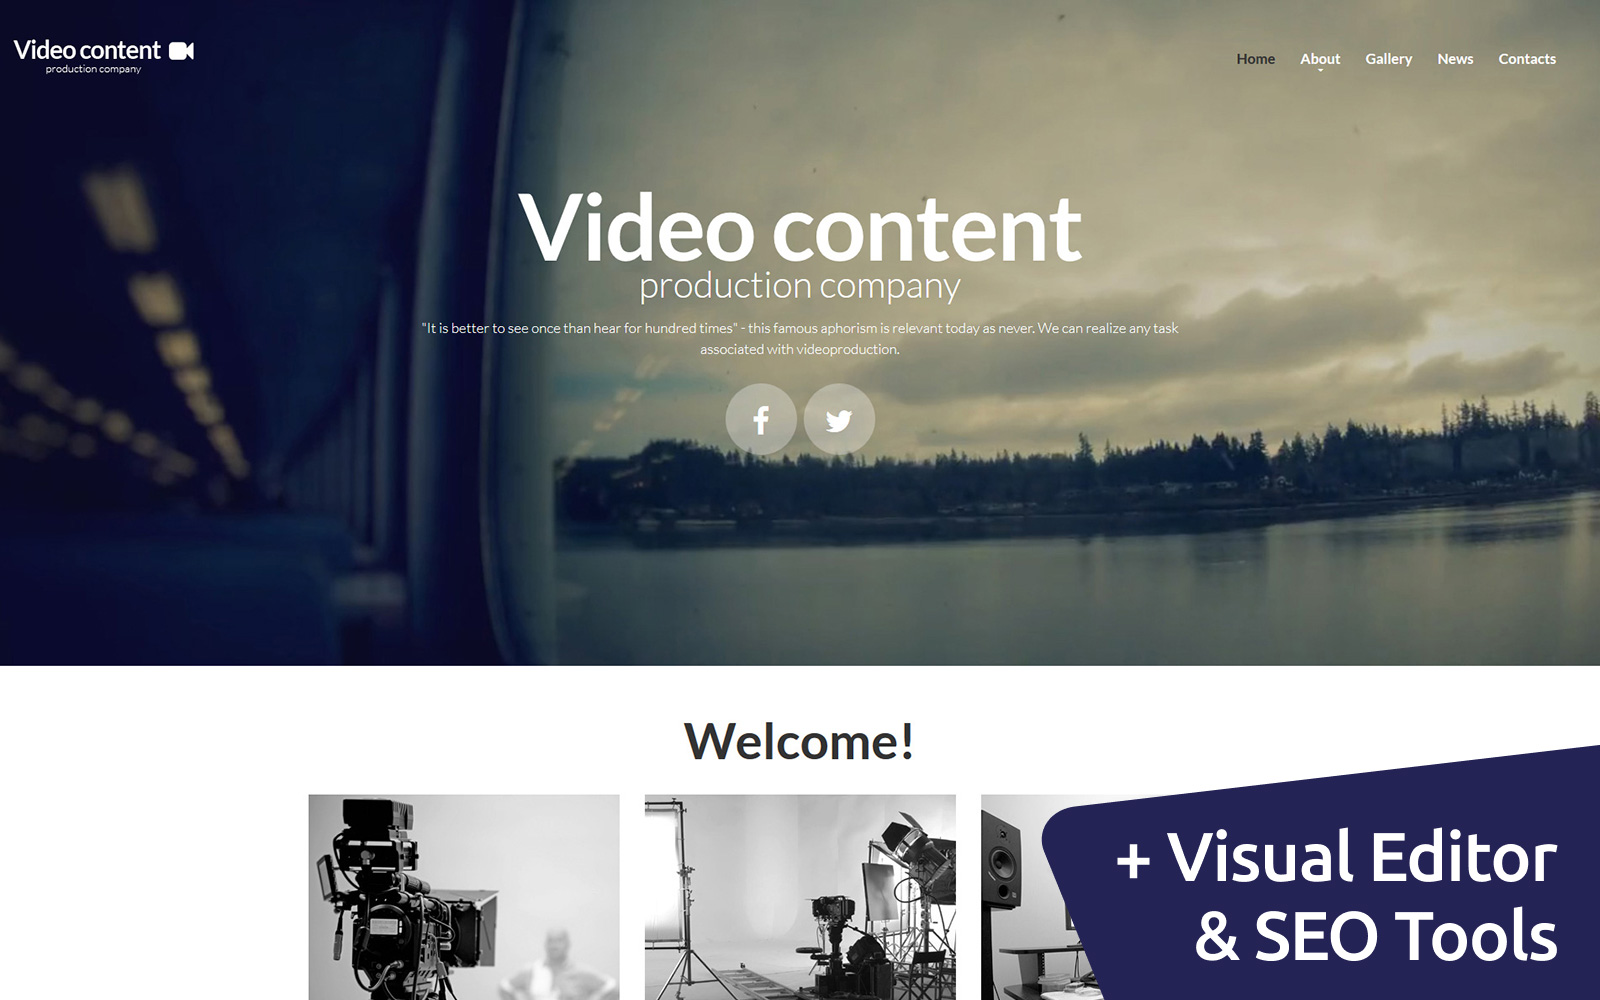 Reszponzív Video Content - Production Company Moto CMS 3 sablon 55998